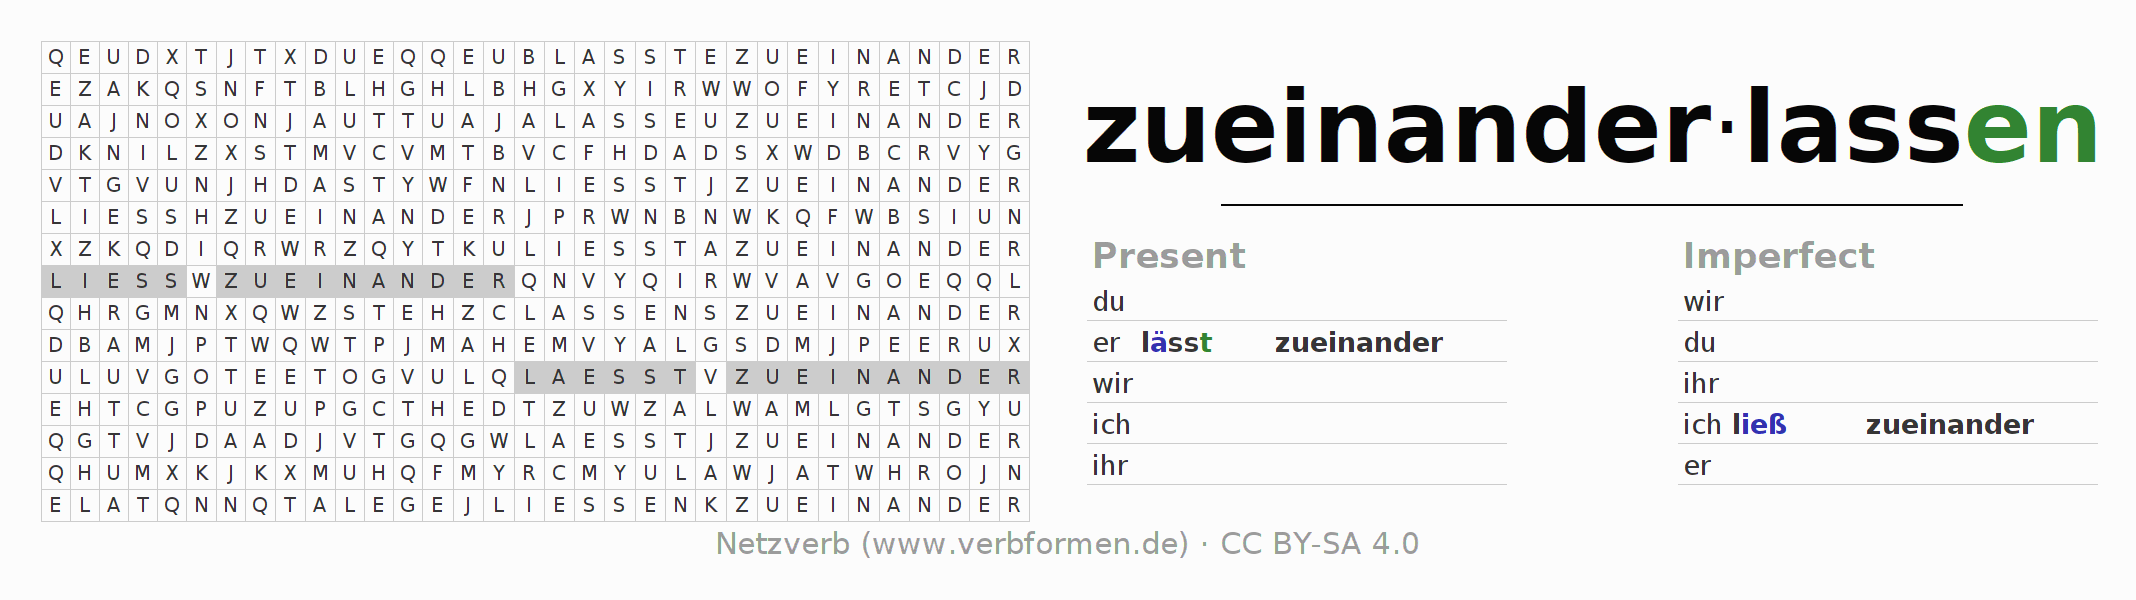 Word search puzzle for the conjugation of the verb zueinanderlassen